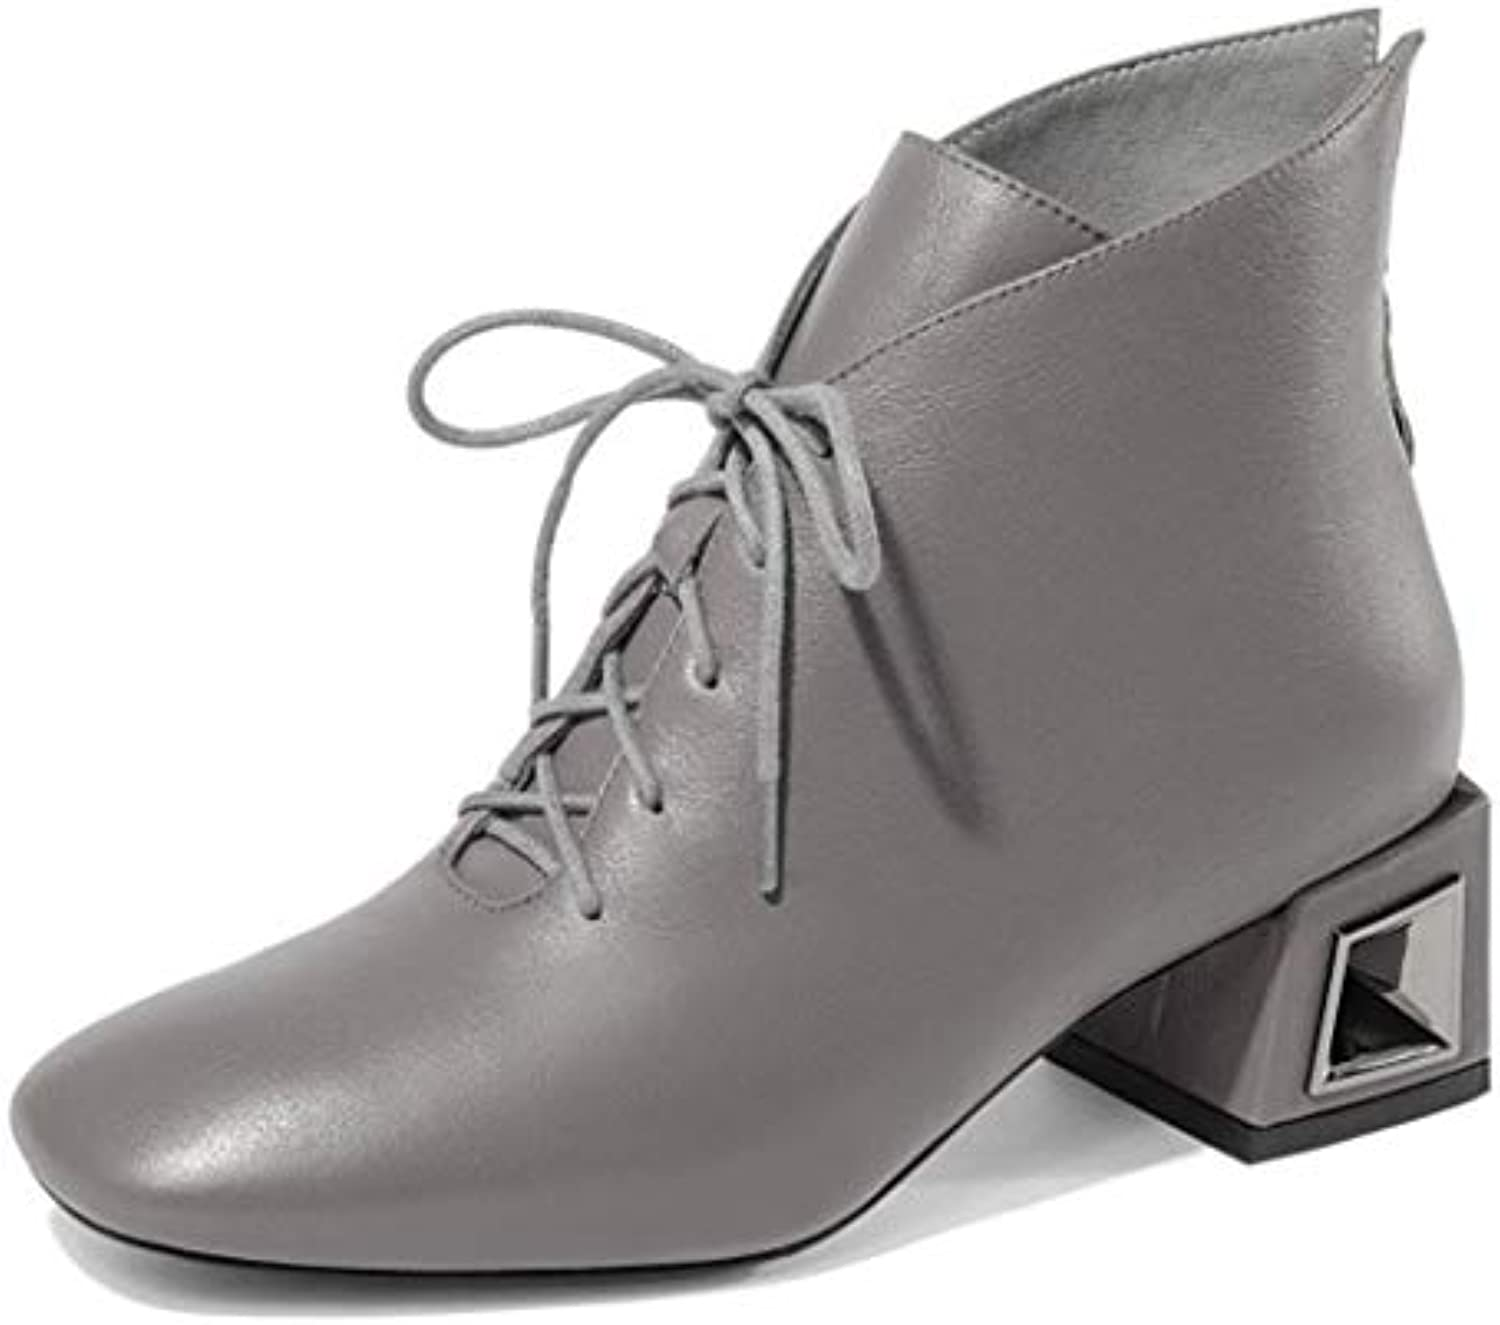 4c3b7ad8d07e RLYAY Women s High Heels Warm Lacing Ankle Boots Casual Work Work Work Shoes  Black Gray B07GVCBN3R Parent 245b8f